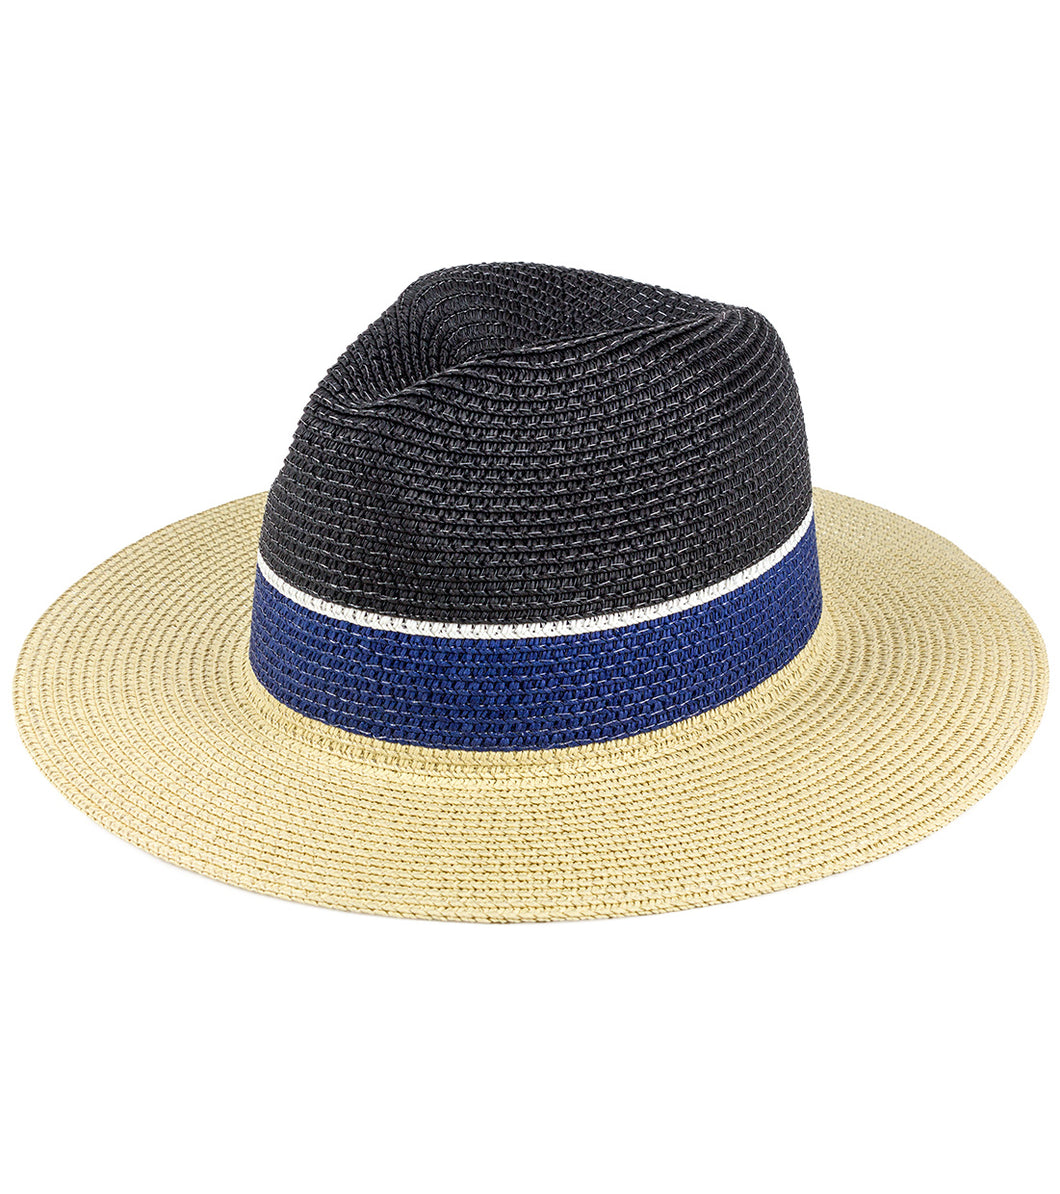 Colorblock Panama Hat - Just Jamie